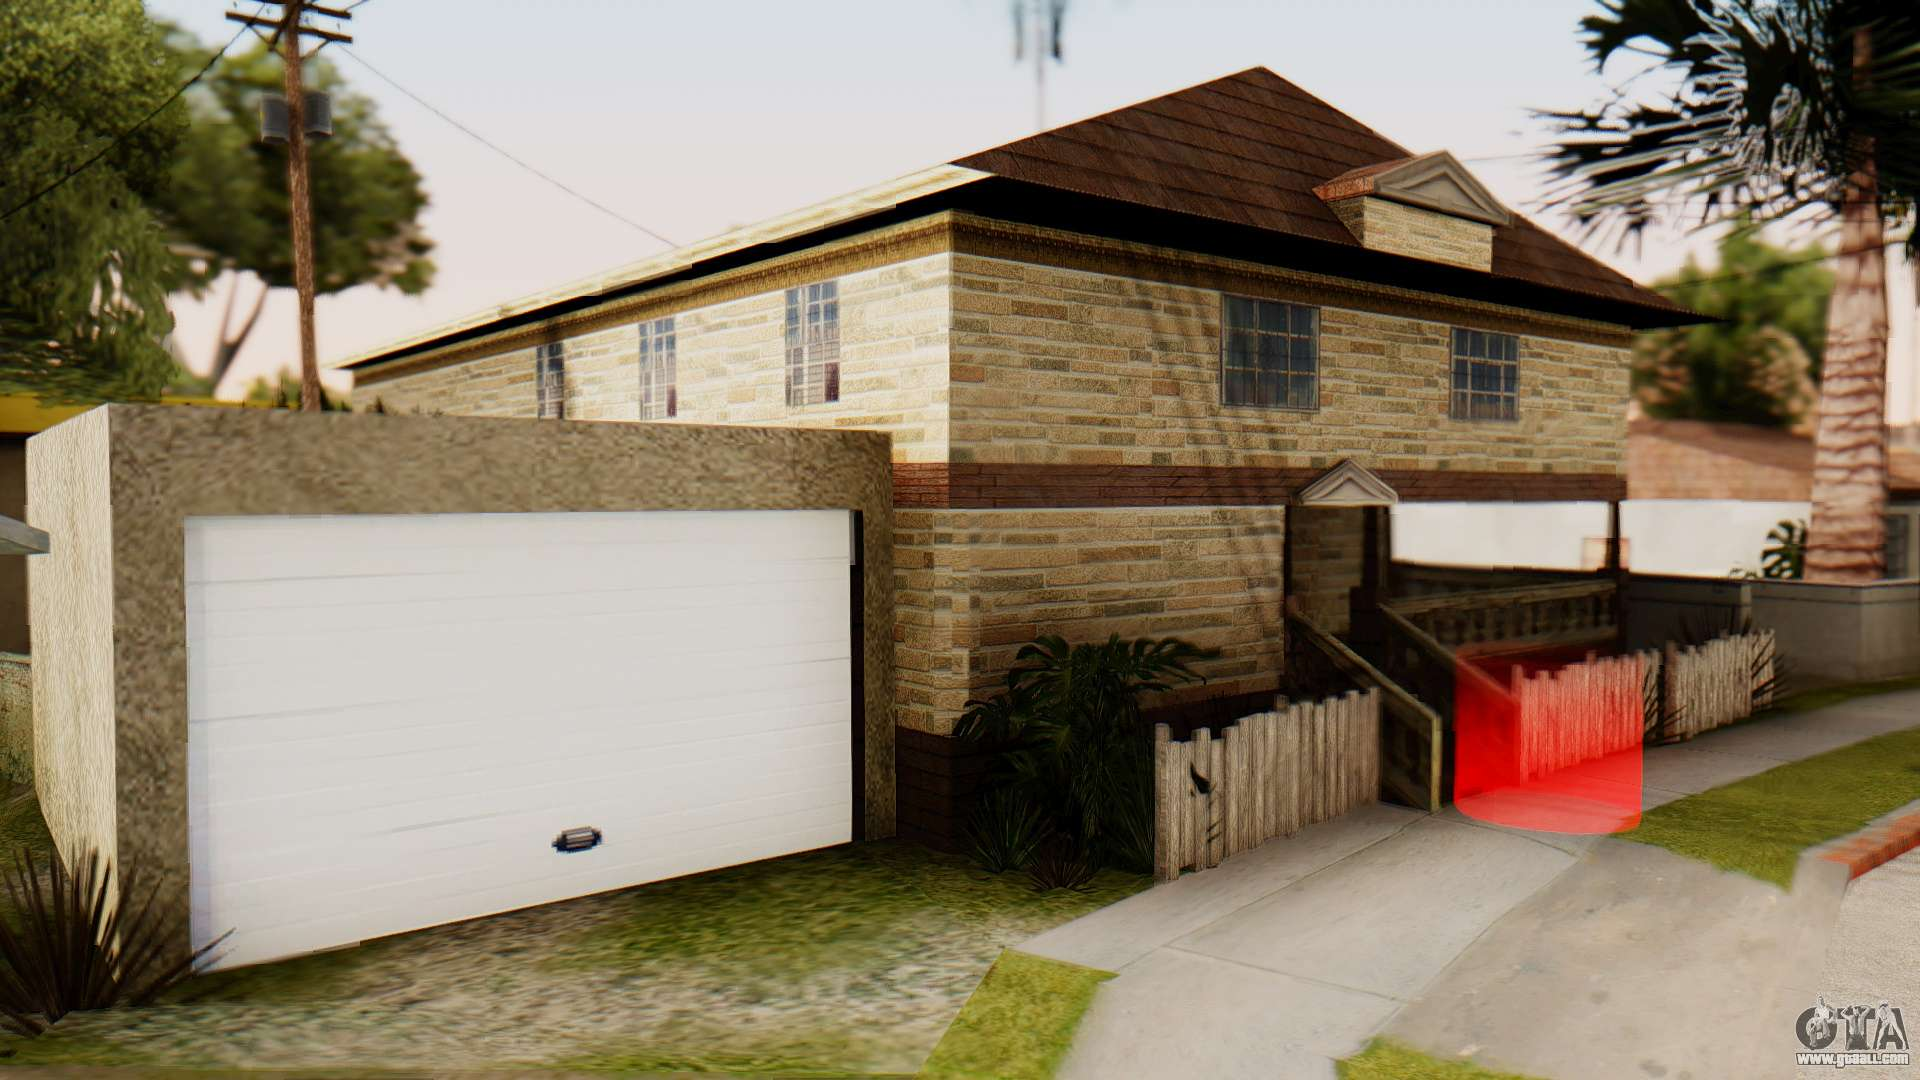 New house for cj for gta san andreas for New house